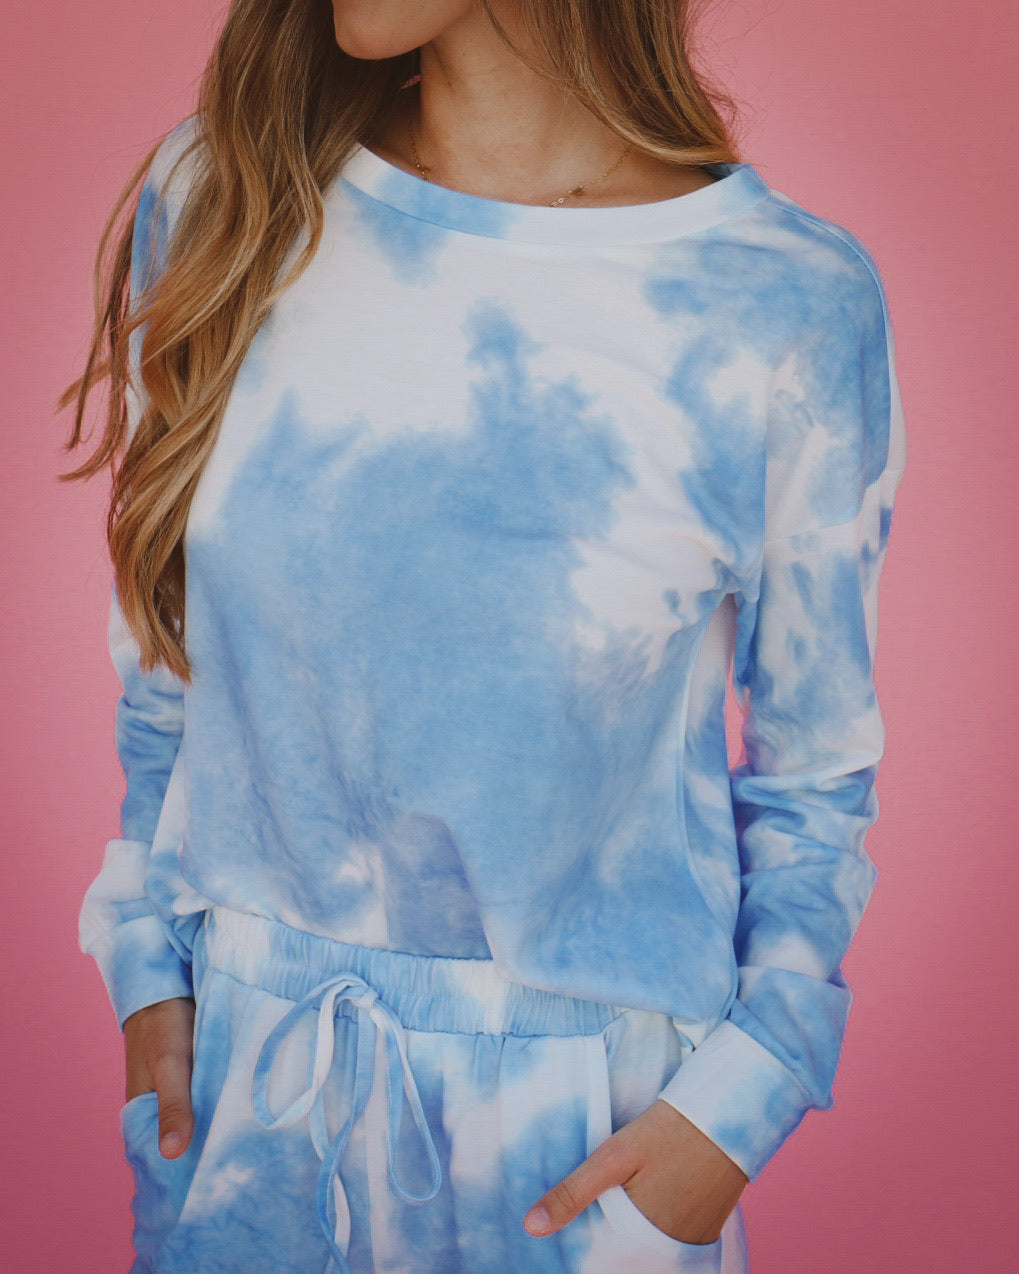 Mikayla Crew Neck in True Blue